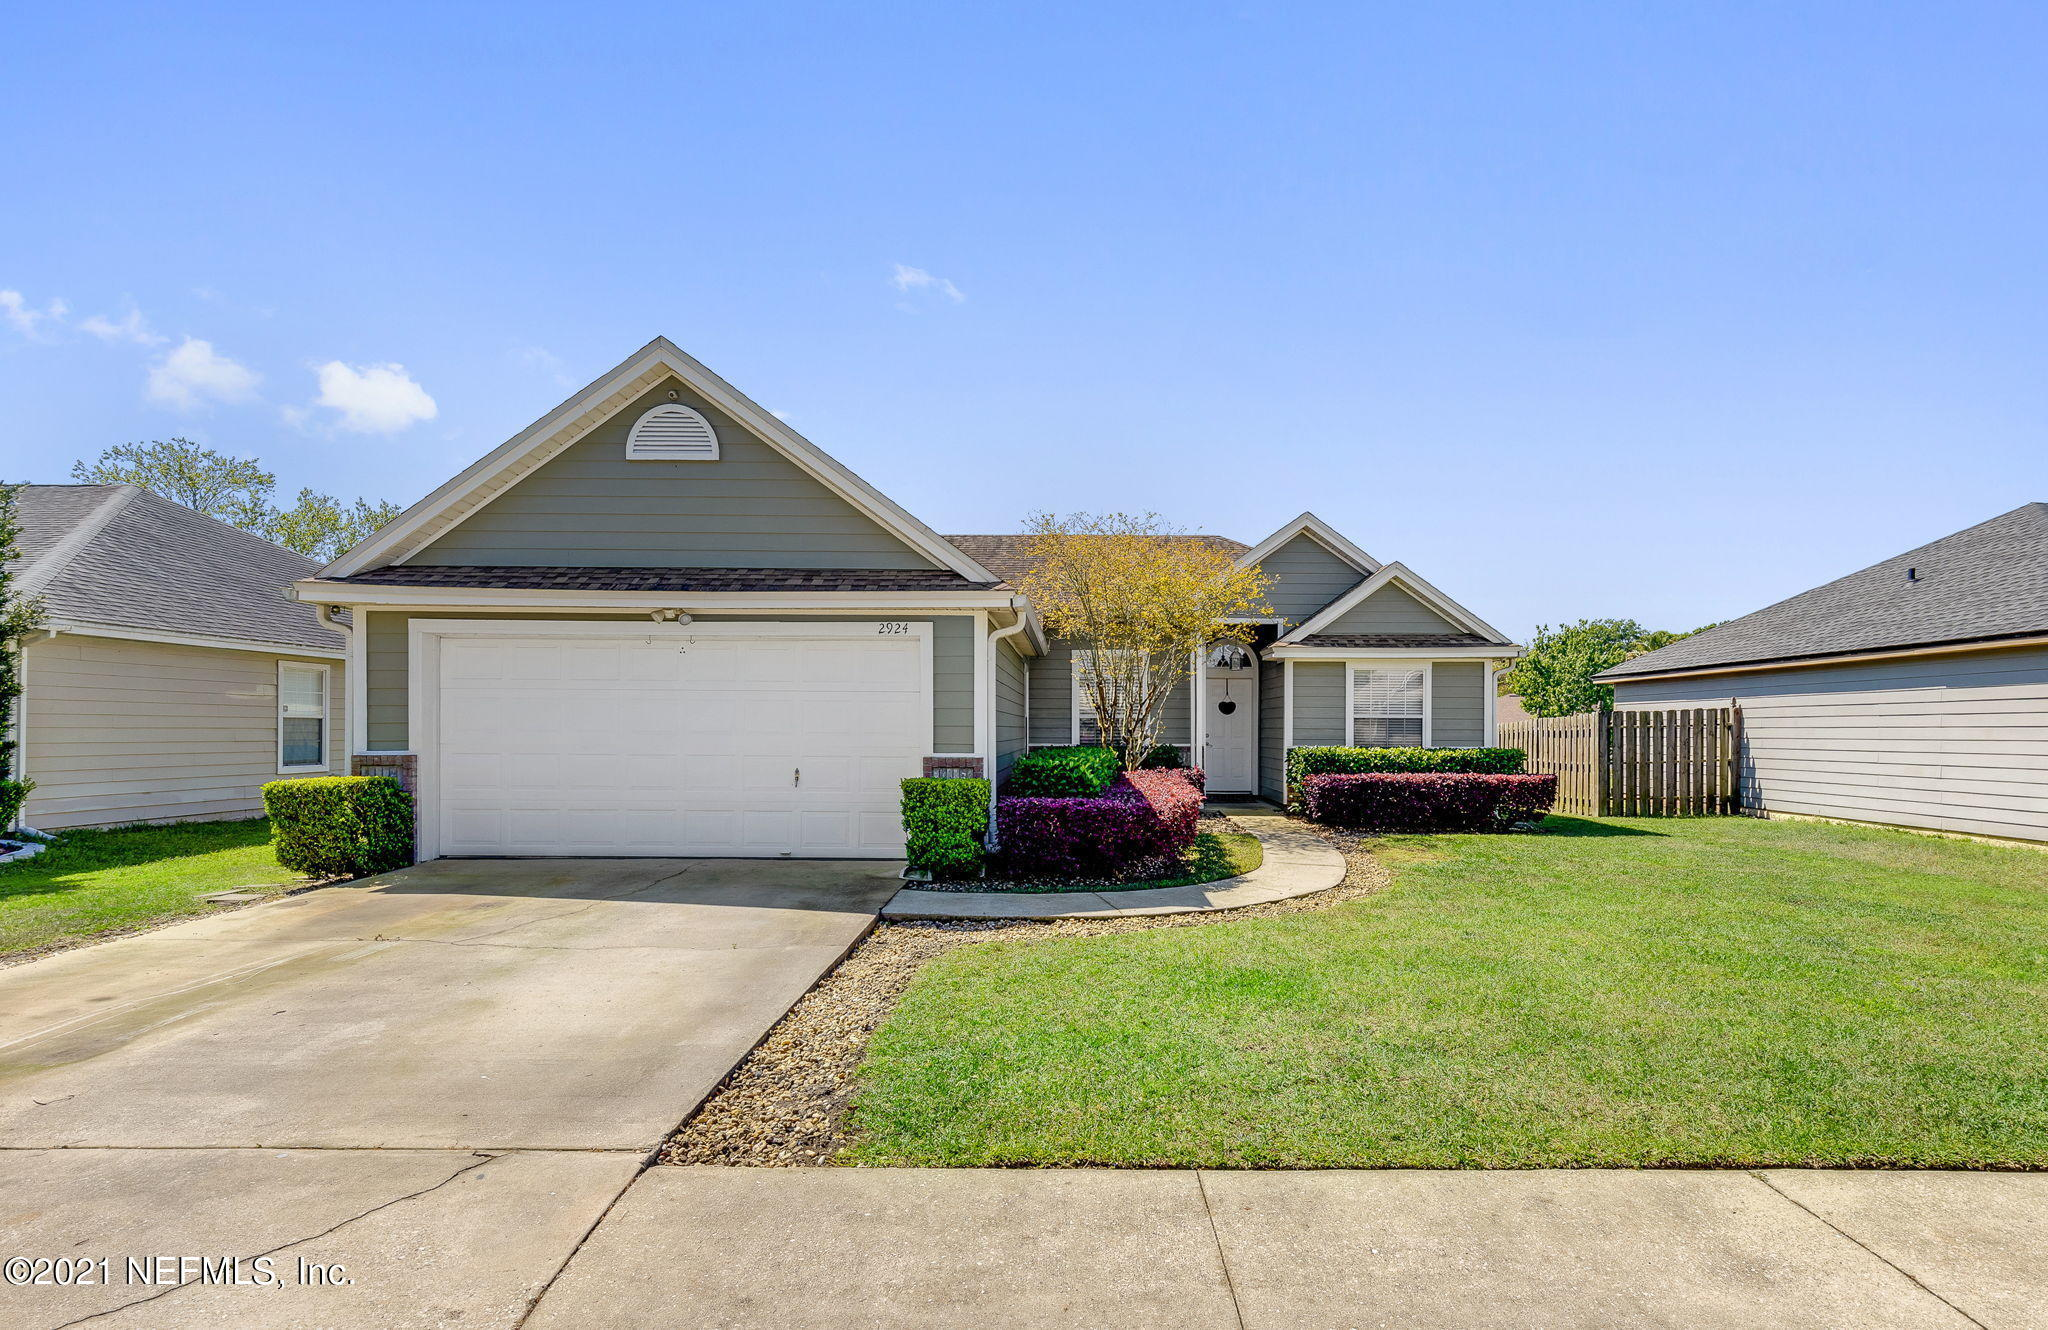 2924 WATERS VIEW, ORANGE PARK, FLORIDA 32073, 3 Bedrooms Bedrooms, ,2 BathroomsBathrooms,Residential,For sale,WATERS VIEW,1104583